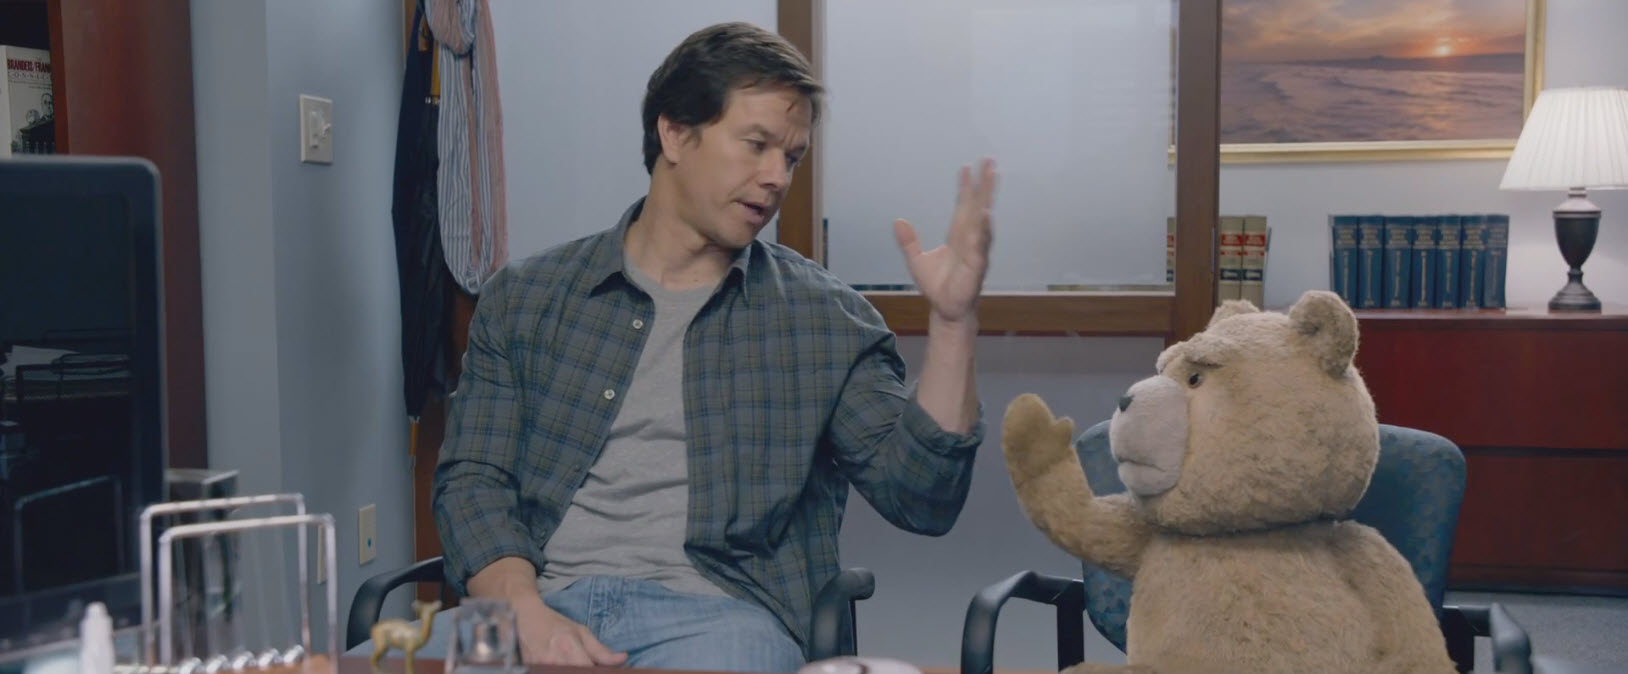 ted 2 movie imags throwing semen cups 2015 images